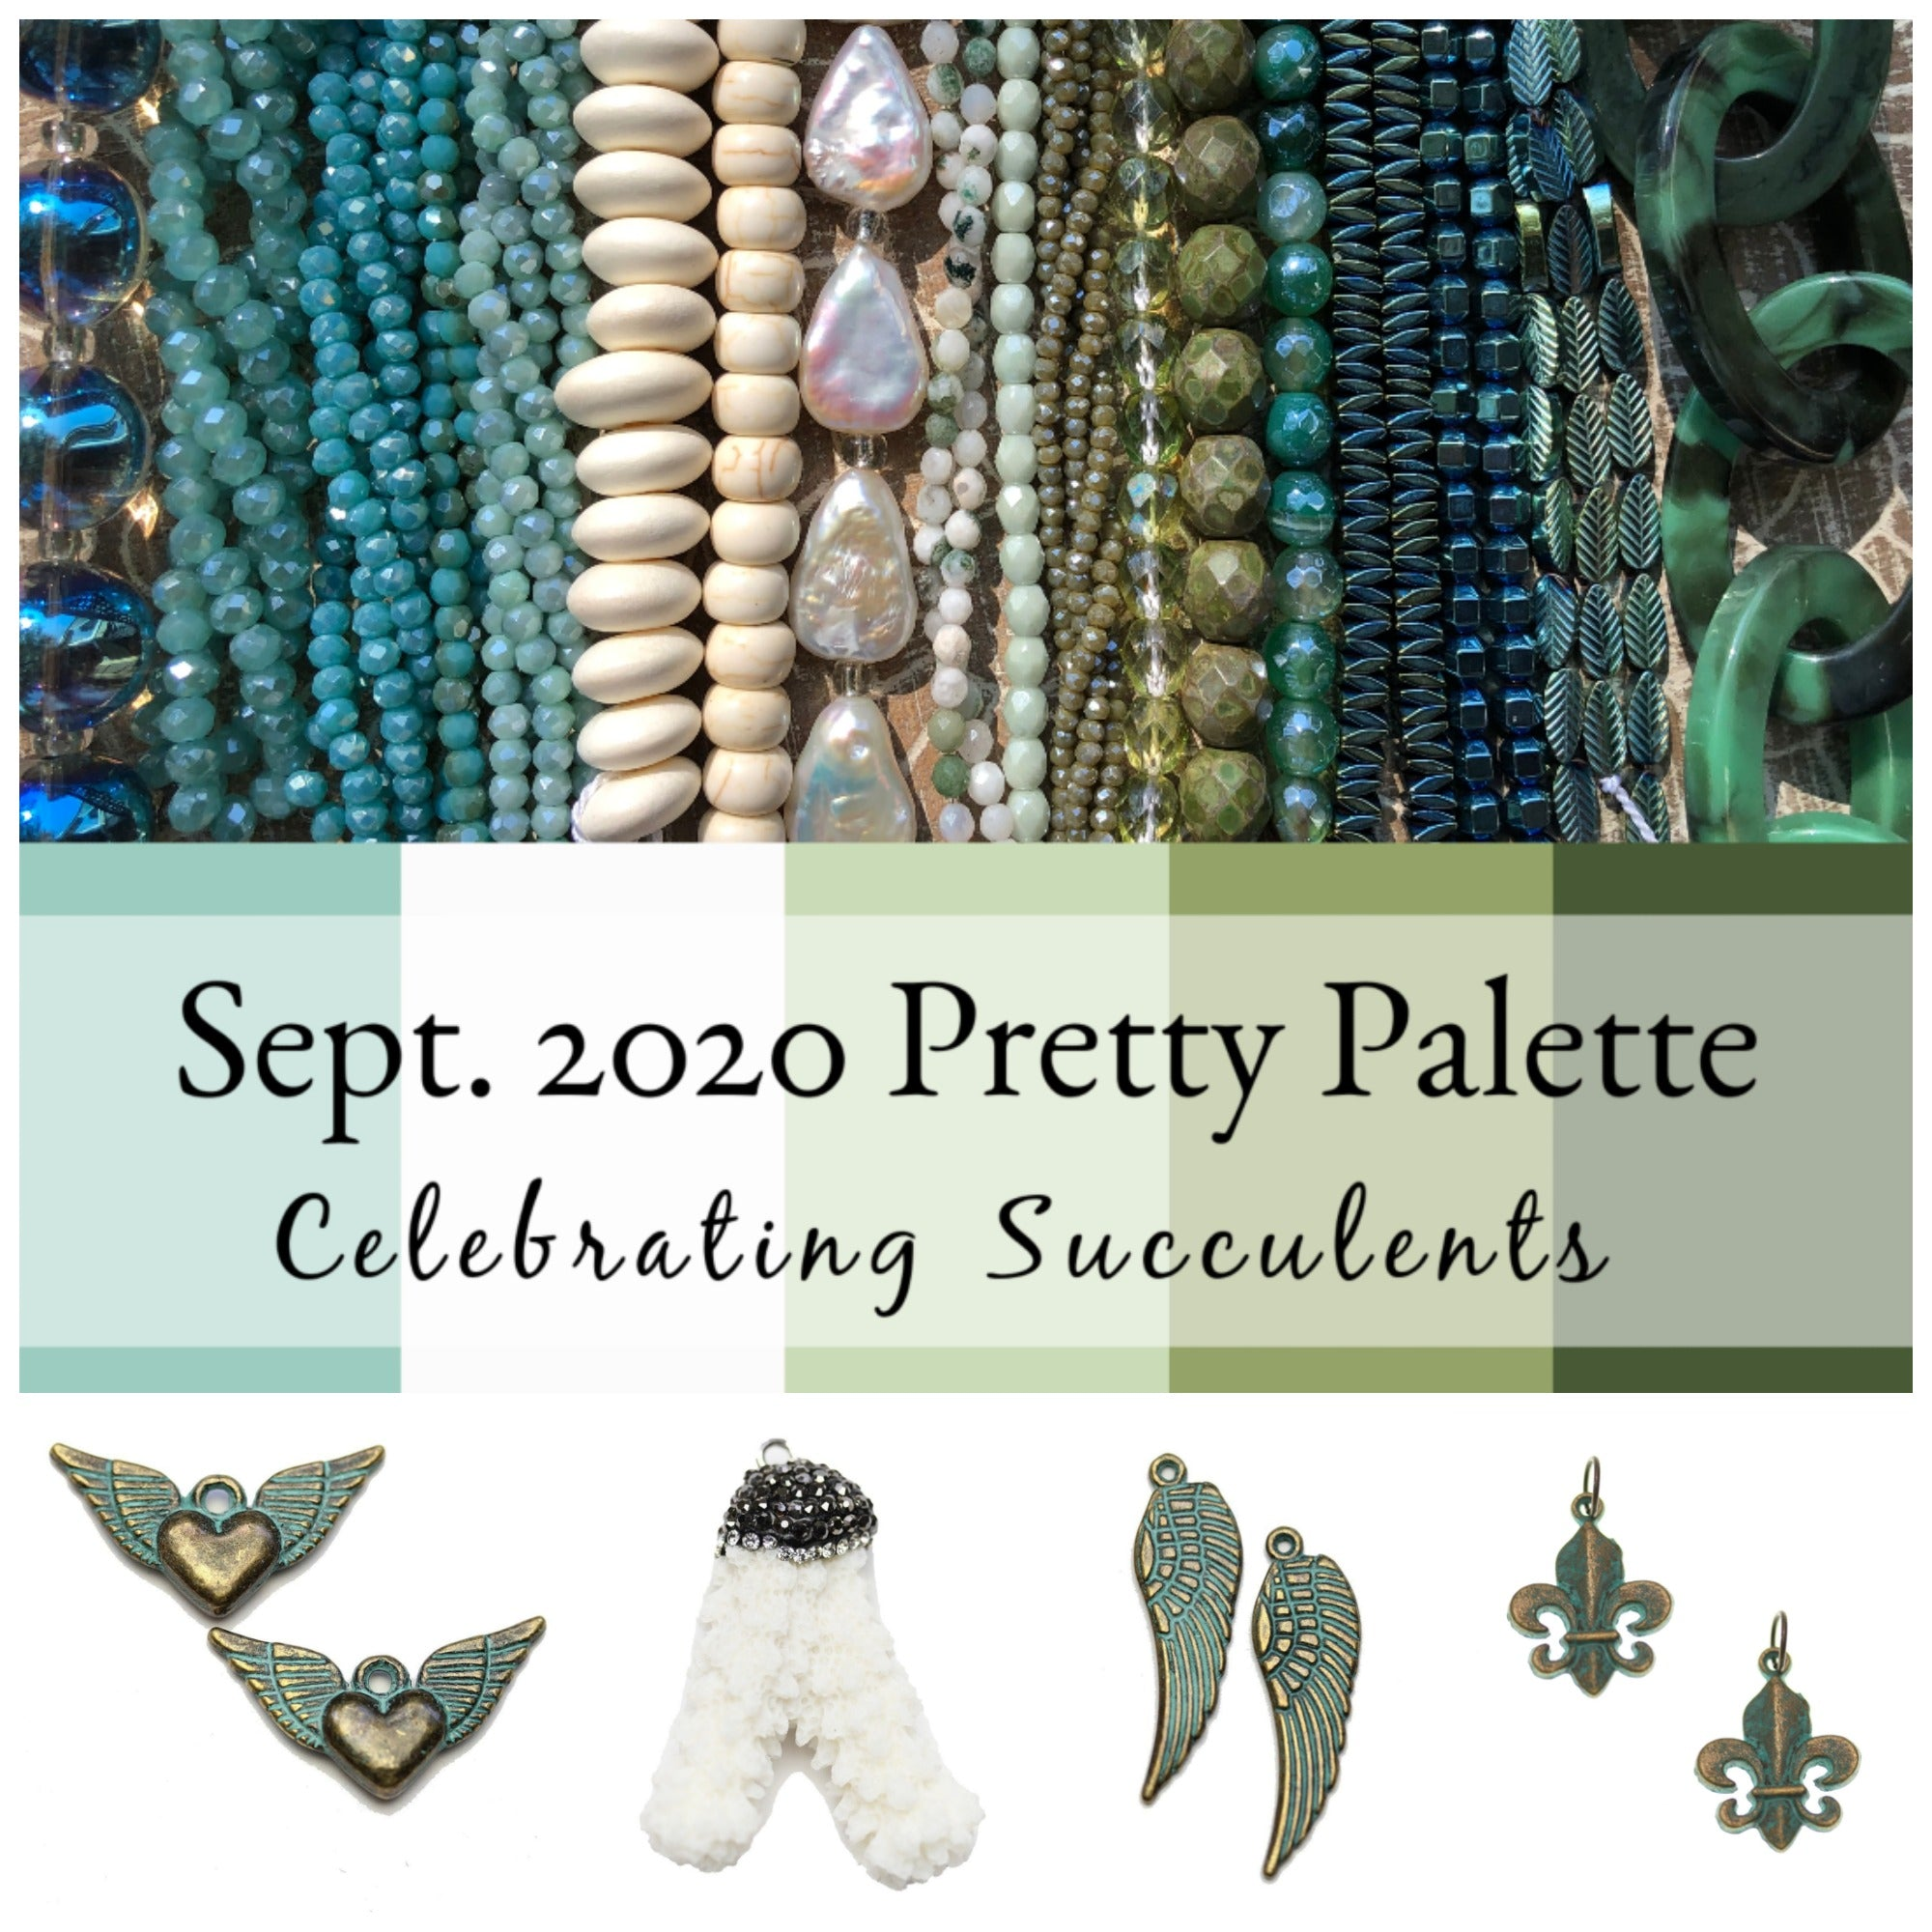 bead strands in blue, cream, grey, and reddish orange, sea-themed charms, tassels, starfish pendant, and leather cording